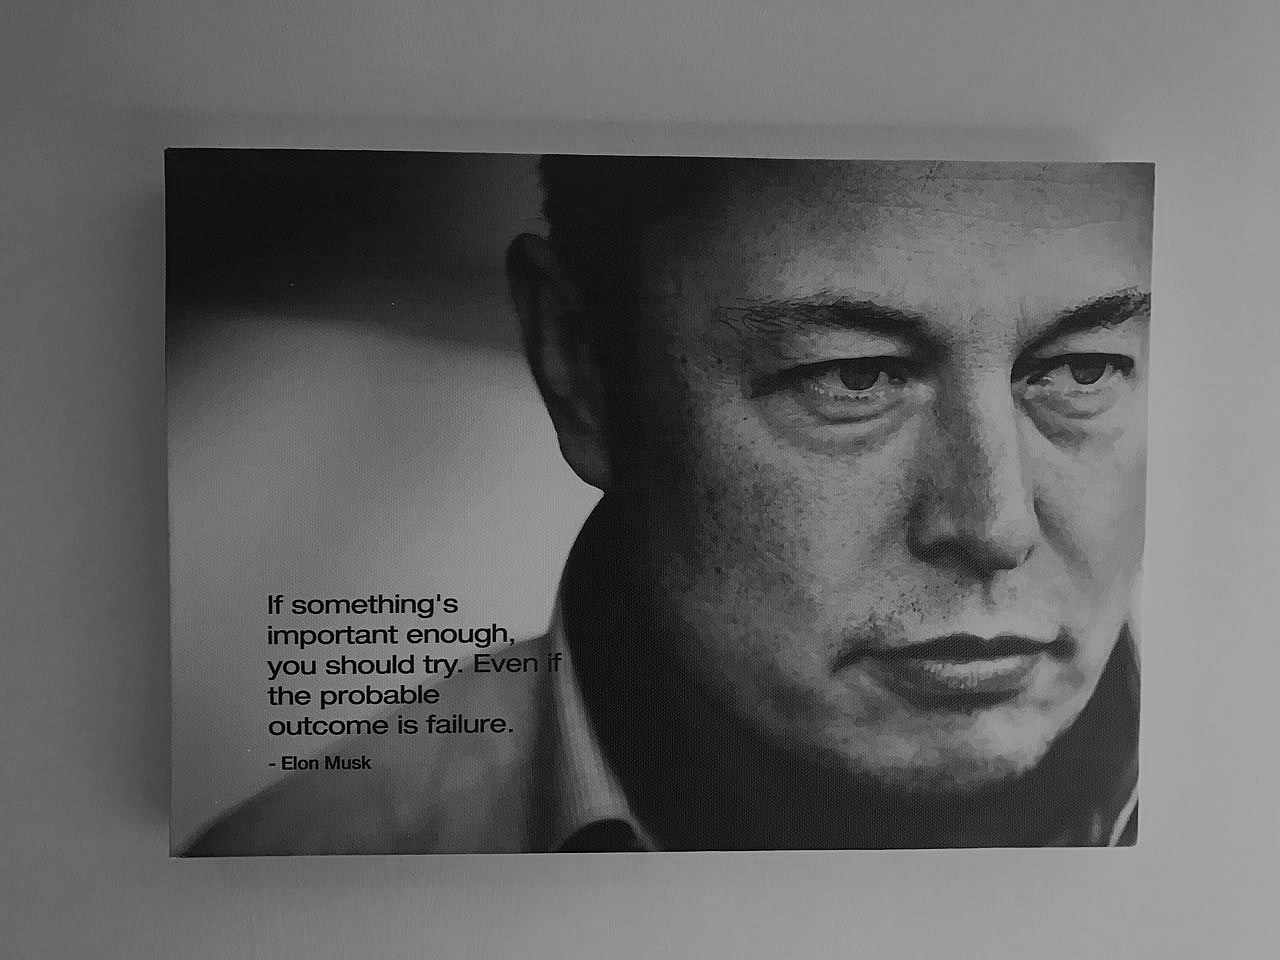 This is another artist canvas example by Vye Graphics, with an inspirational quote from Elon Musk